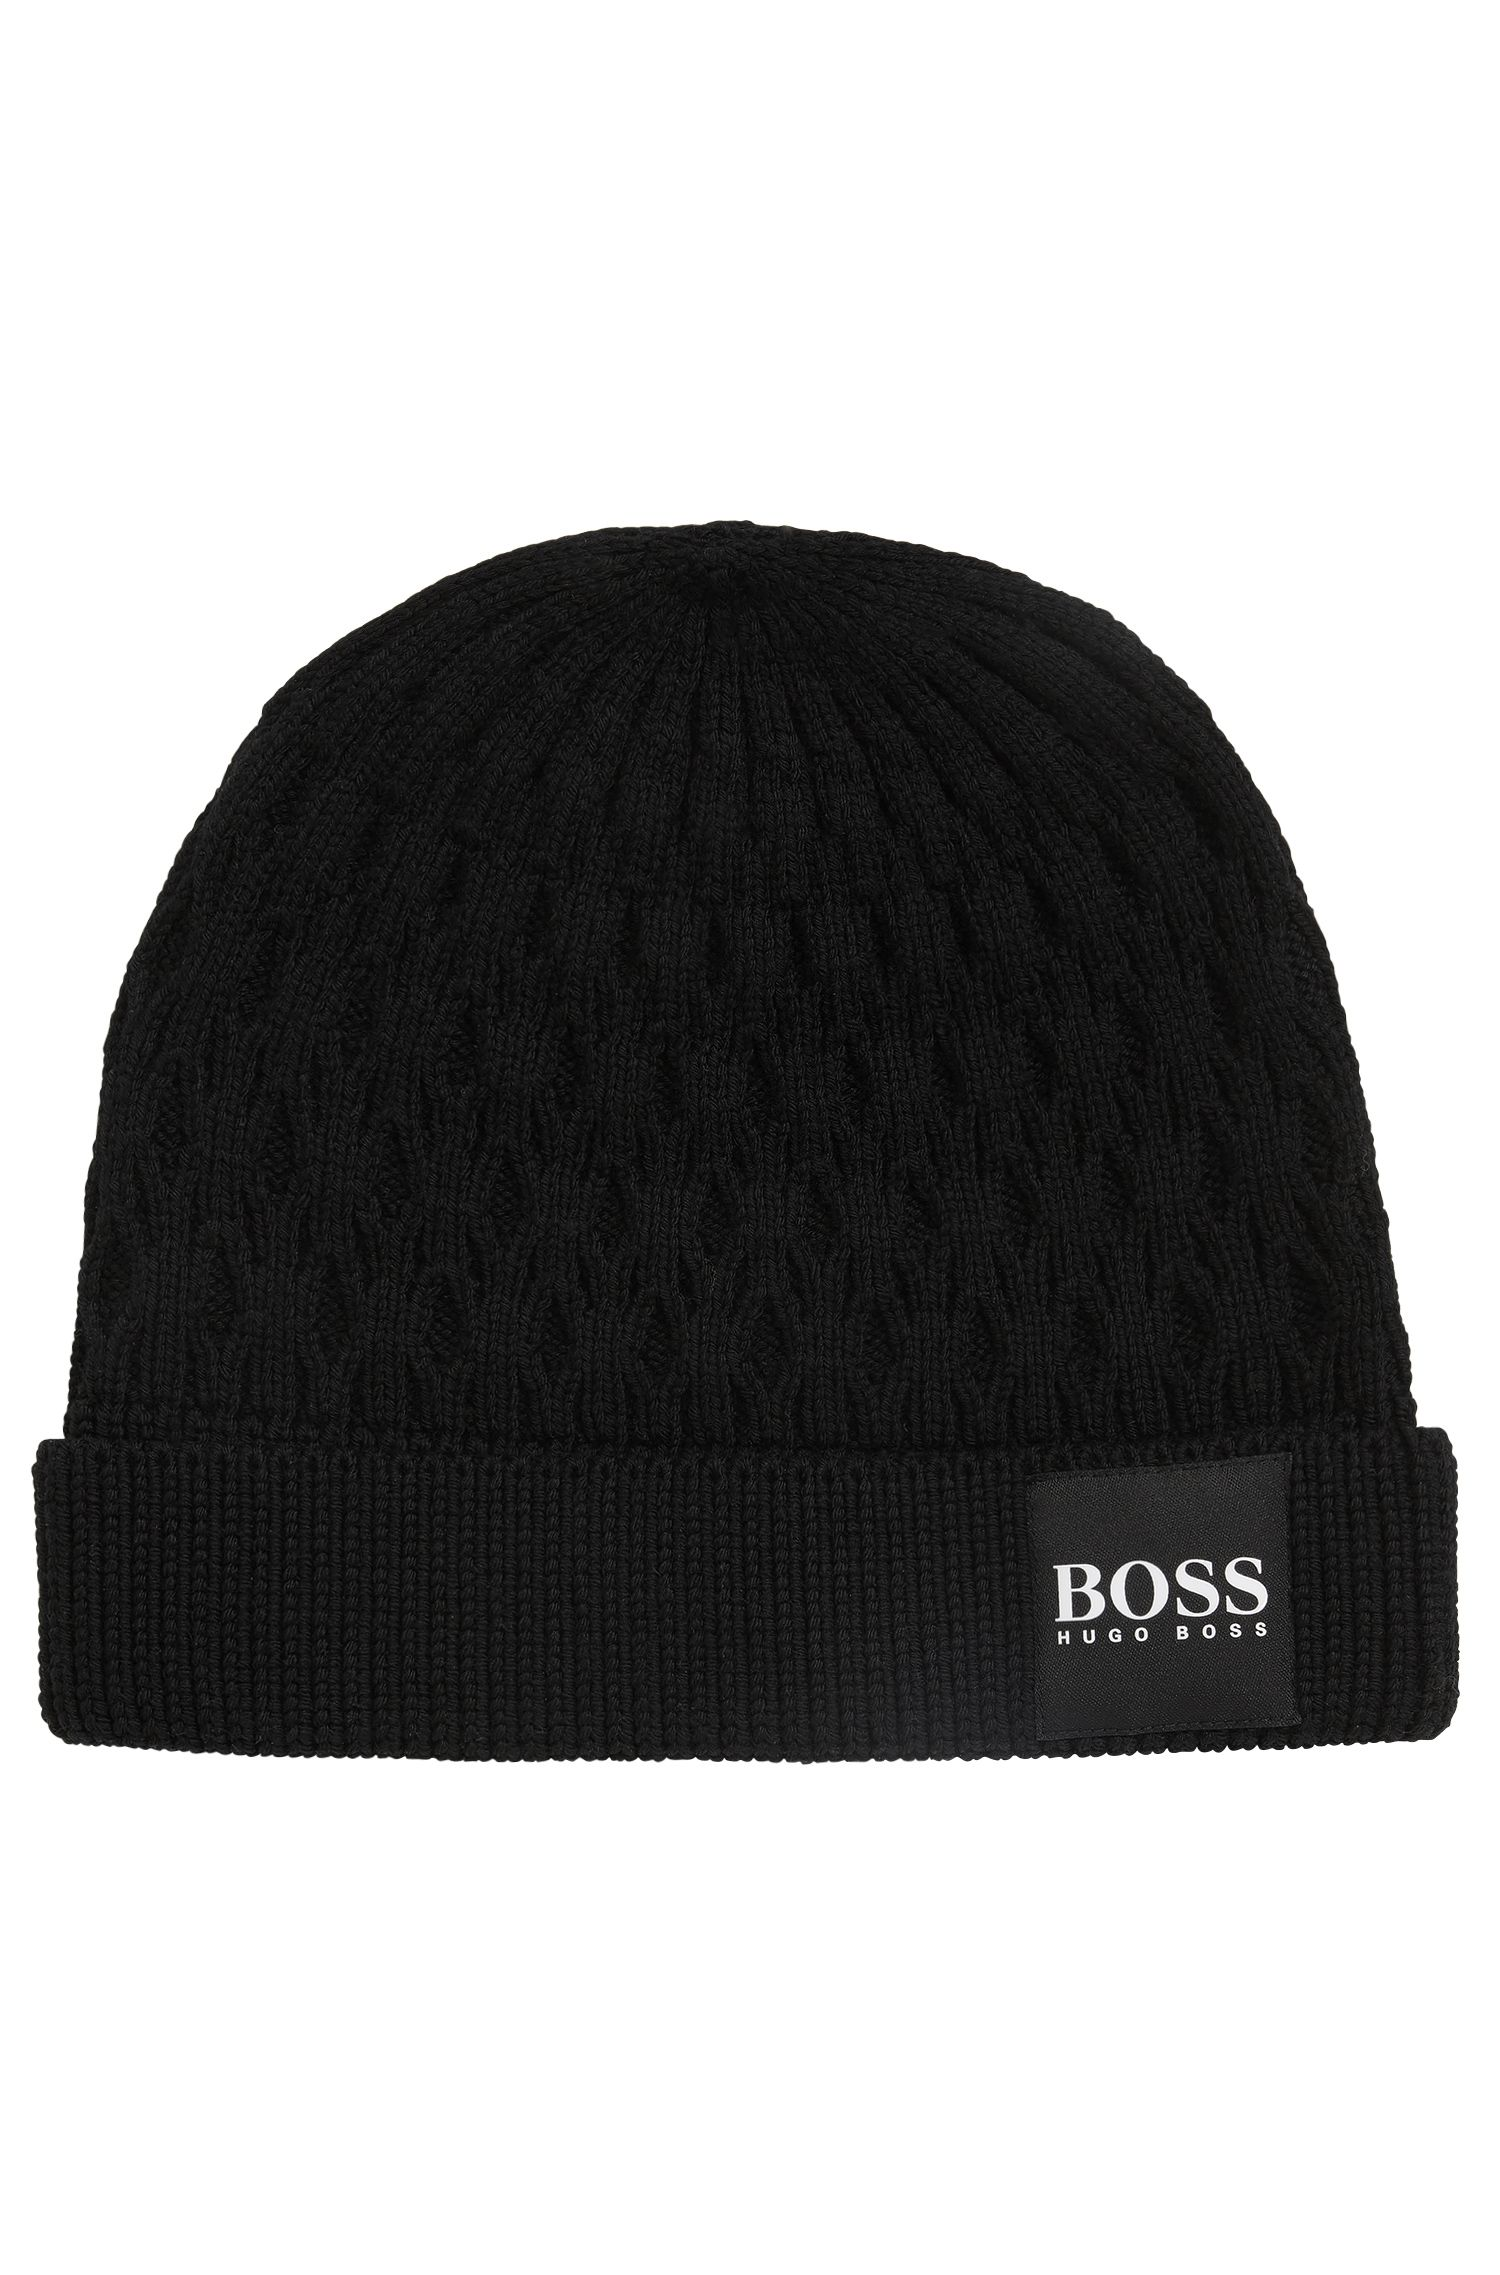 Knitted beanie hat in structured virgin wool, Black